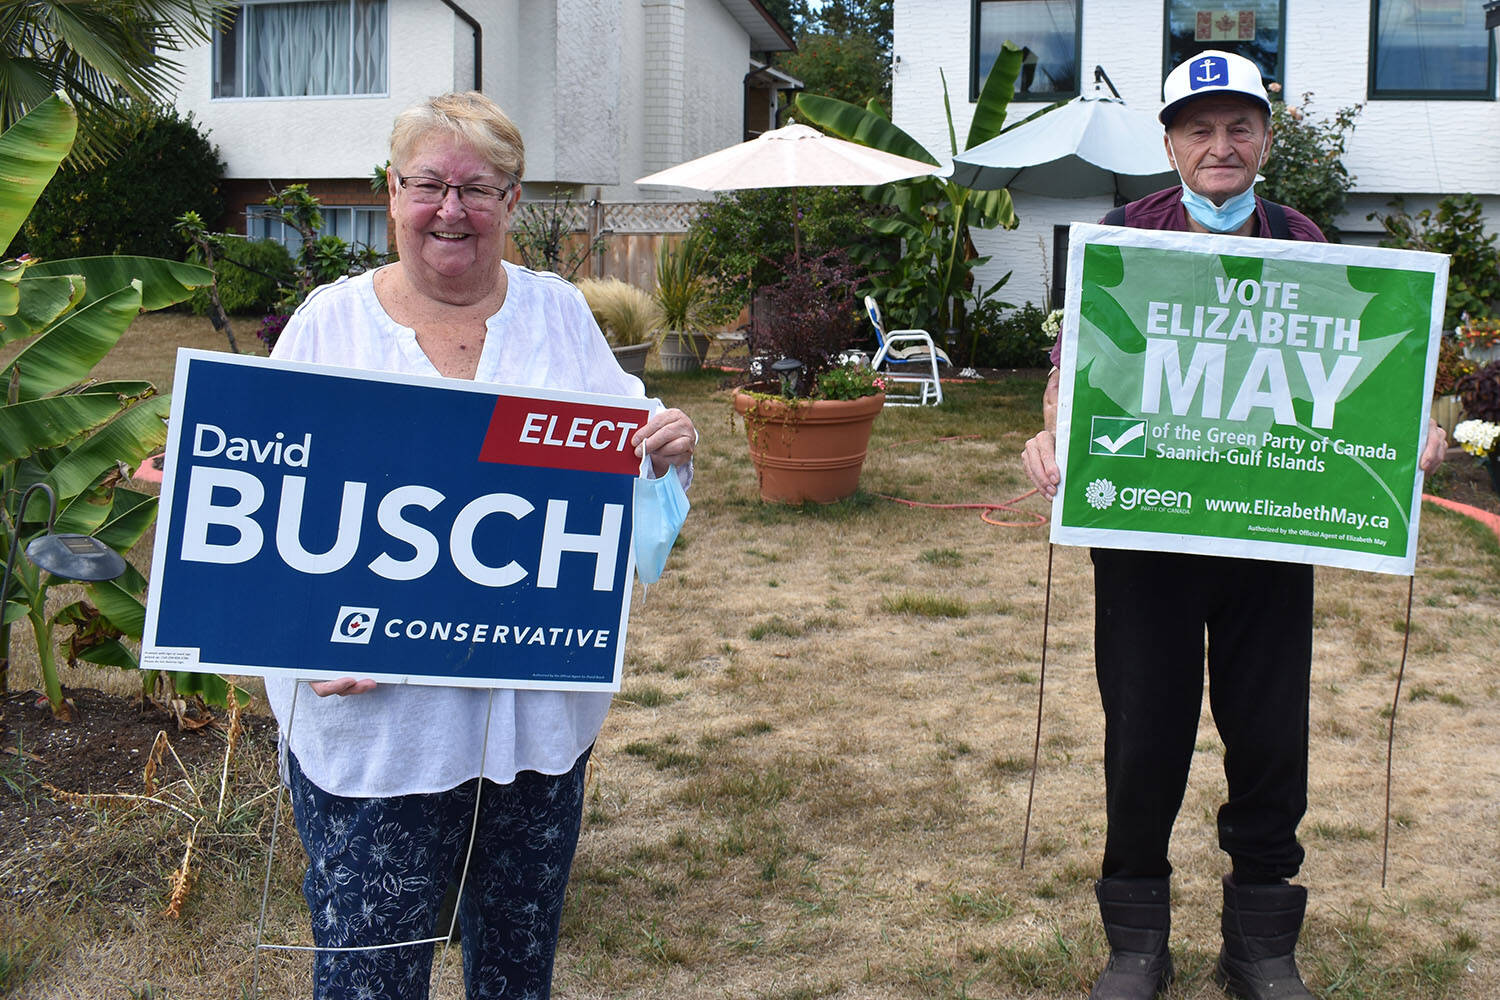 While voting for different candidates in this year's federal election, Hazel and Ed Widenmaier of Central Saanich won't let politics get in the way of their 56 years of marriage. (Wolf Depner/News Staff)